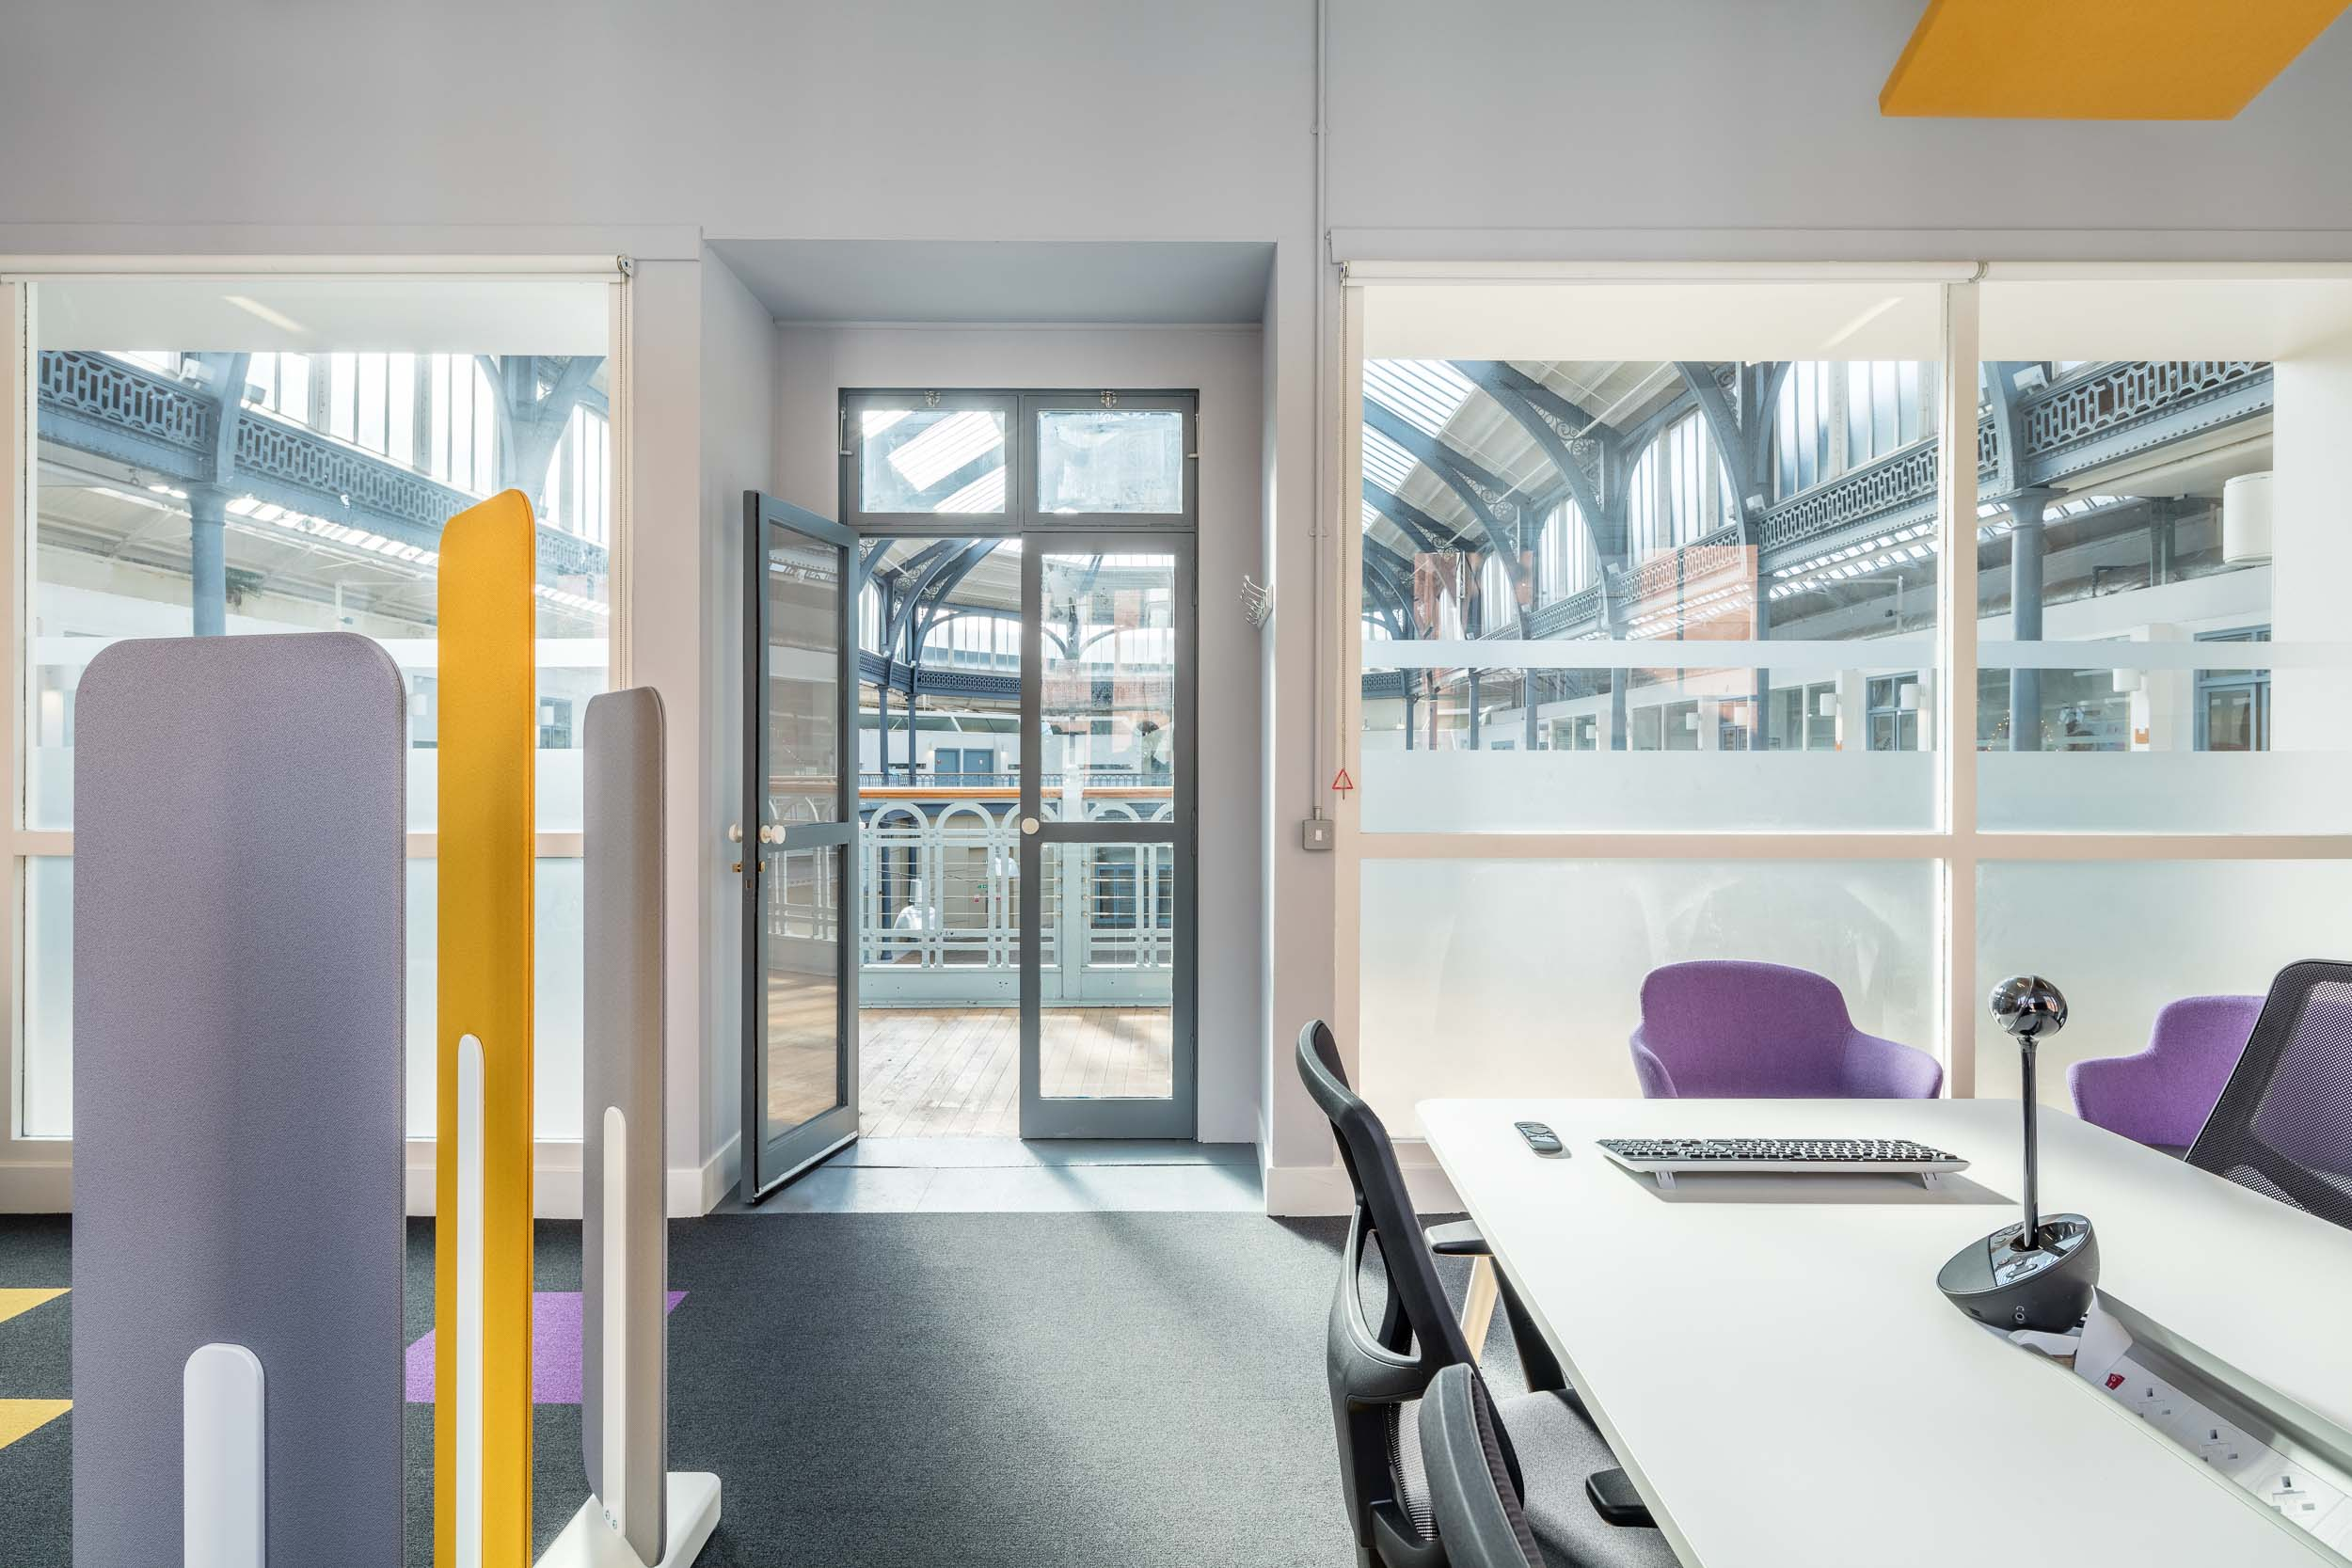 Acoustic office design at Help Musicians at The Briggait in Glasgow